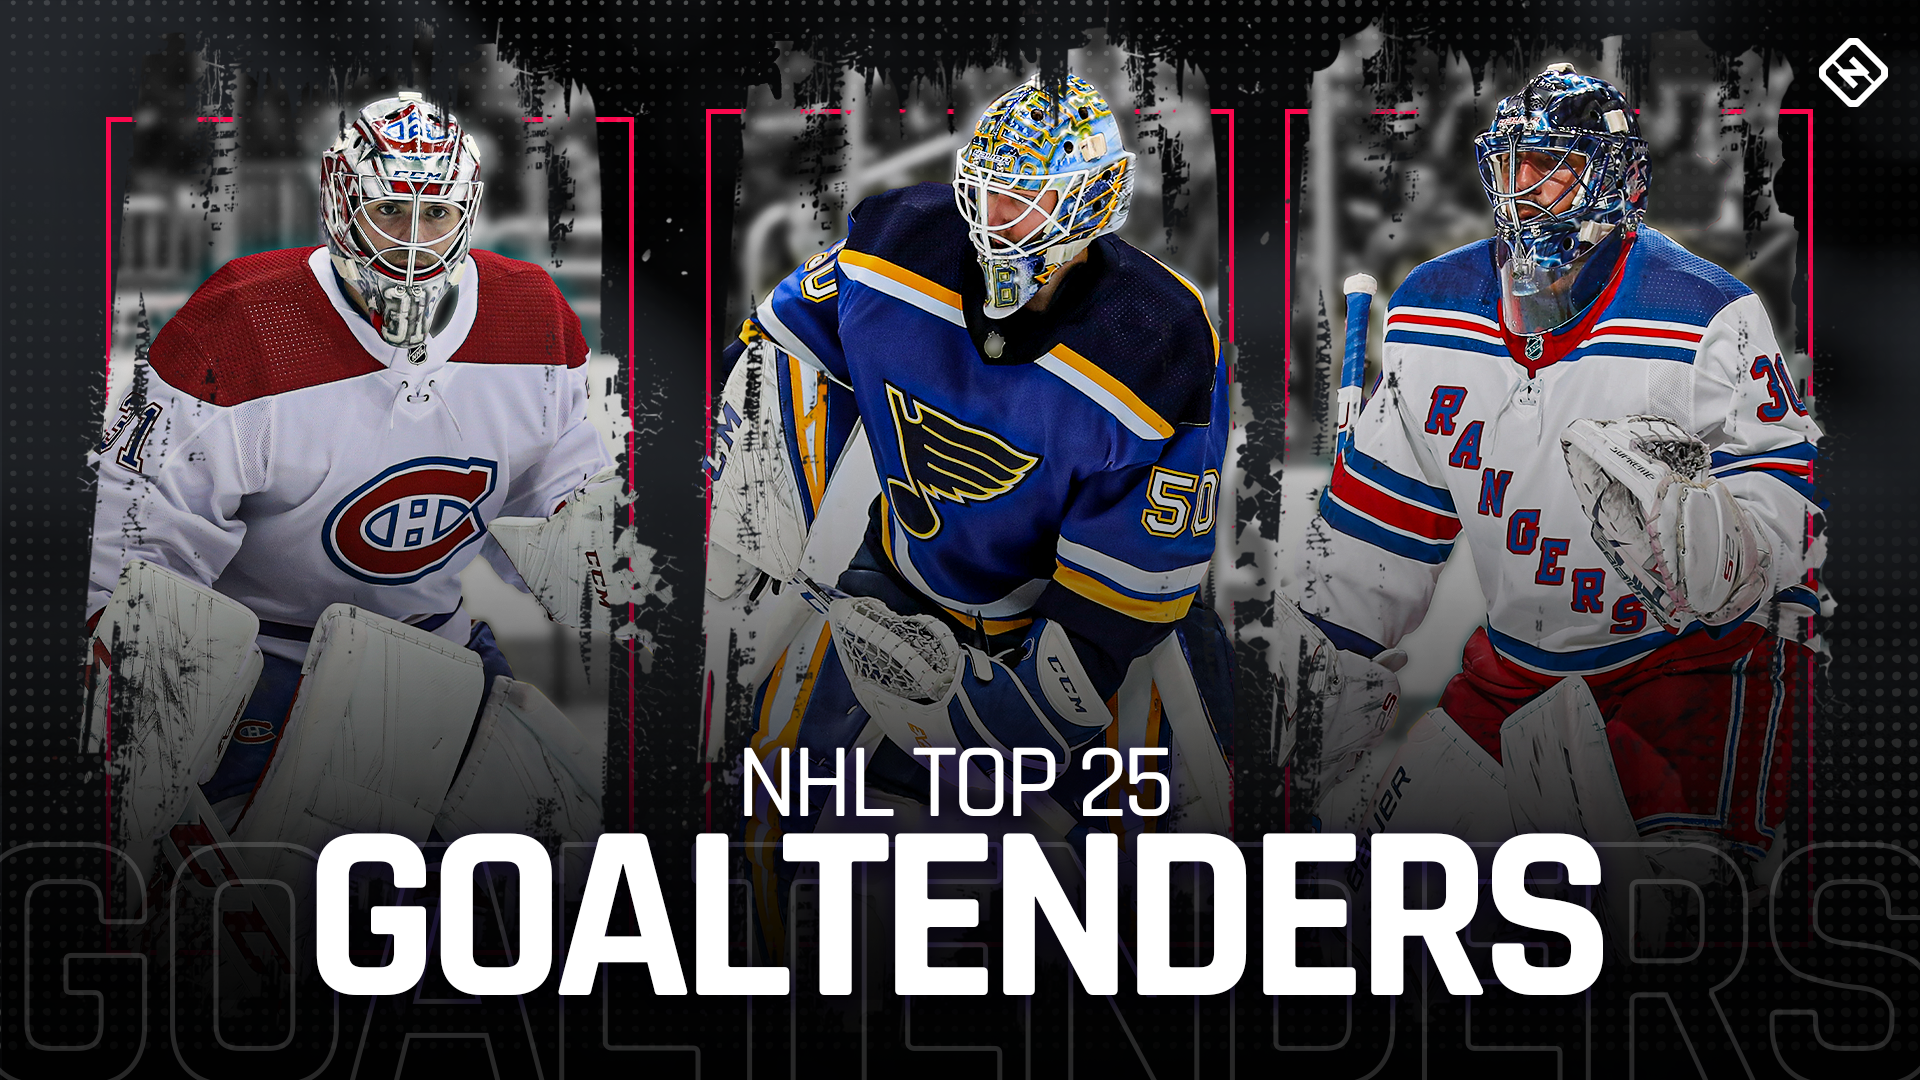 Ranking the top 25 NHL goaltenders in 2019-20